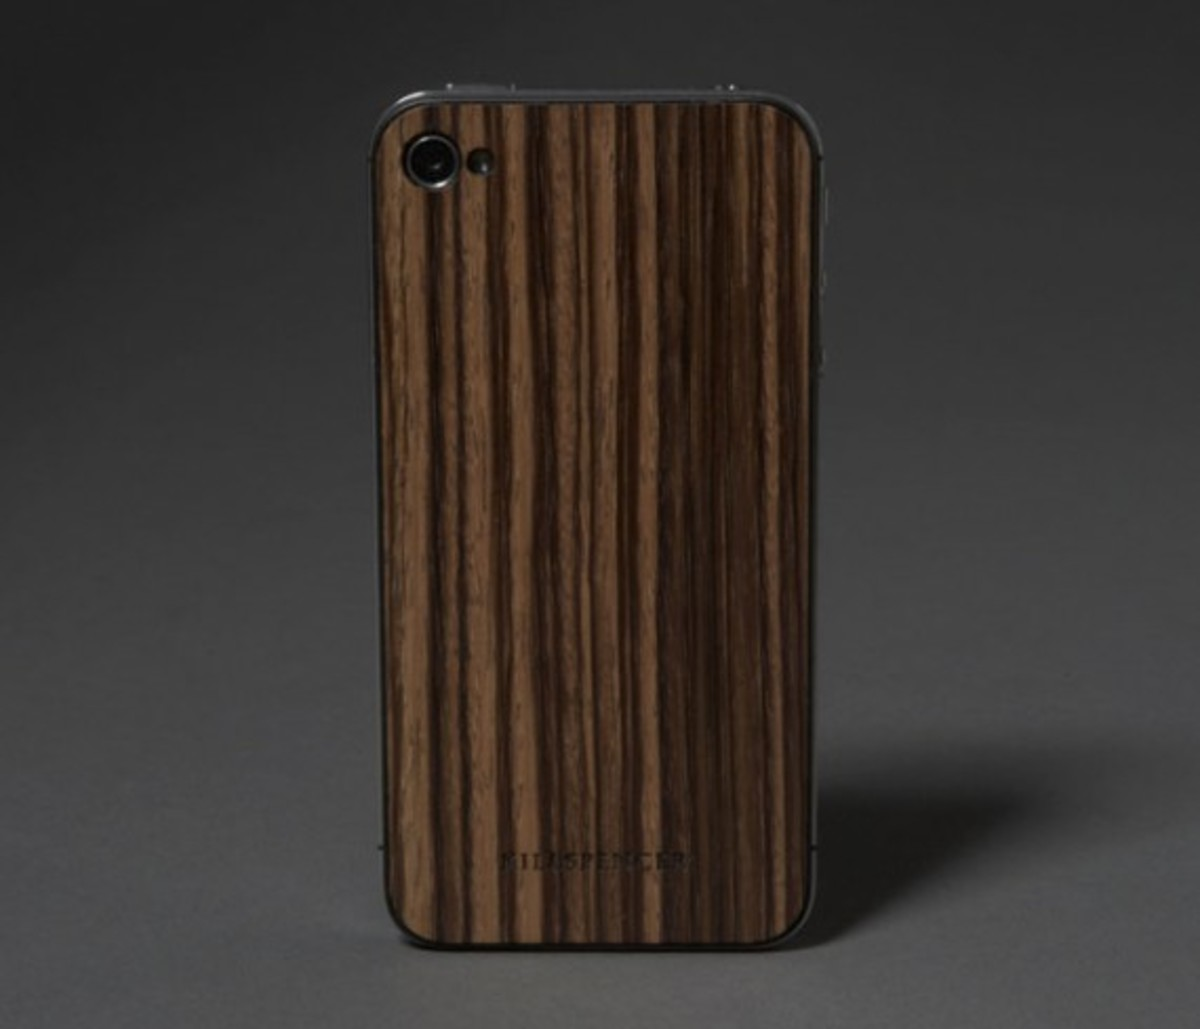 killspencer-zebrawood-iphone-4-veil-06